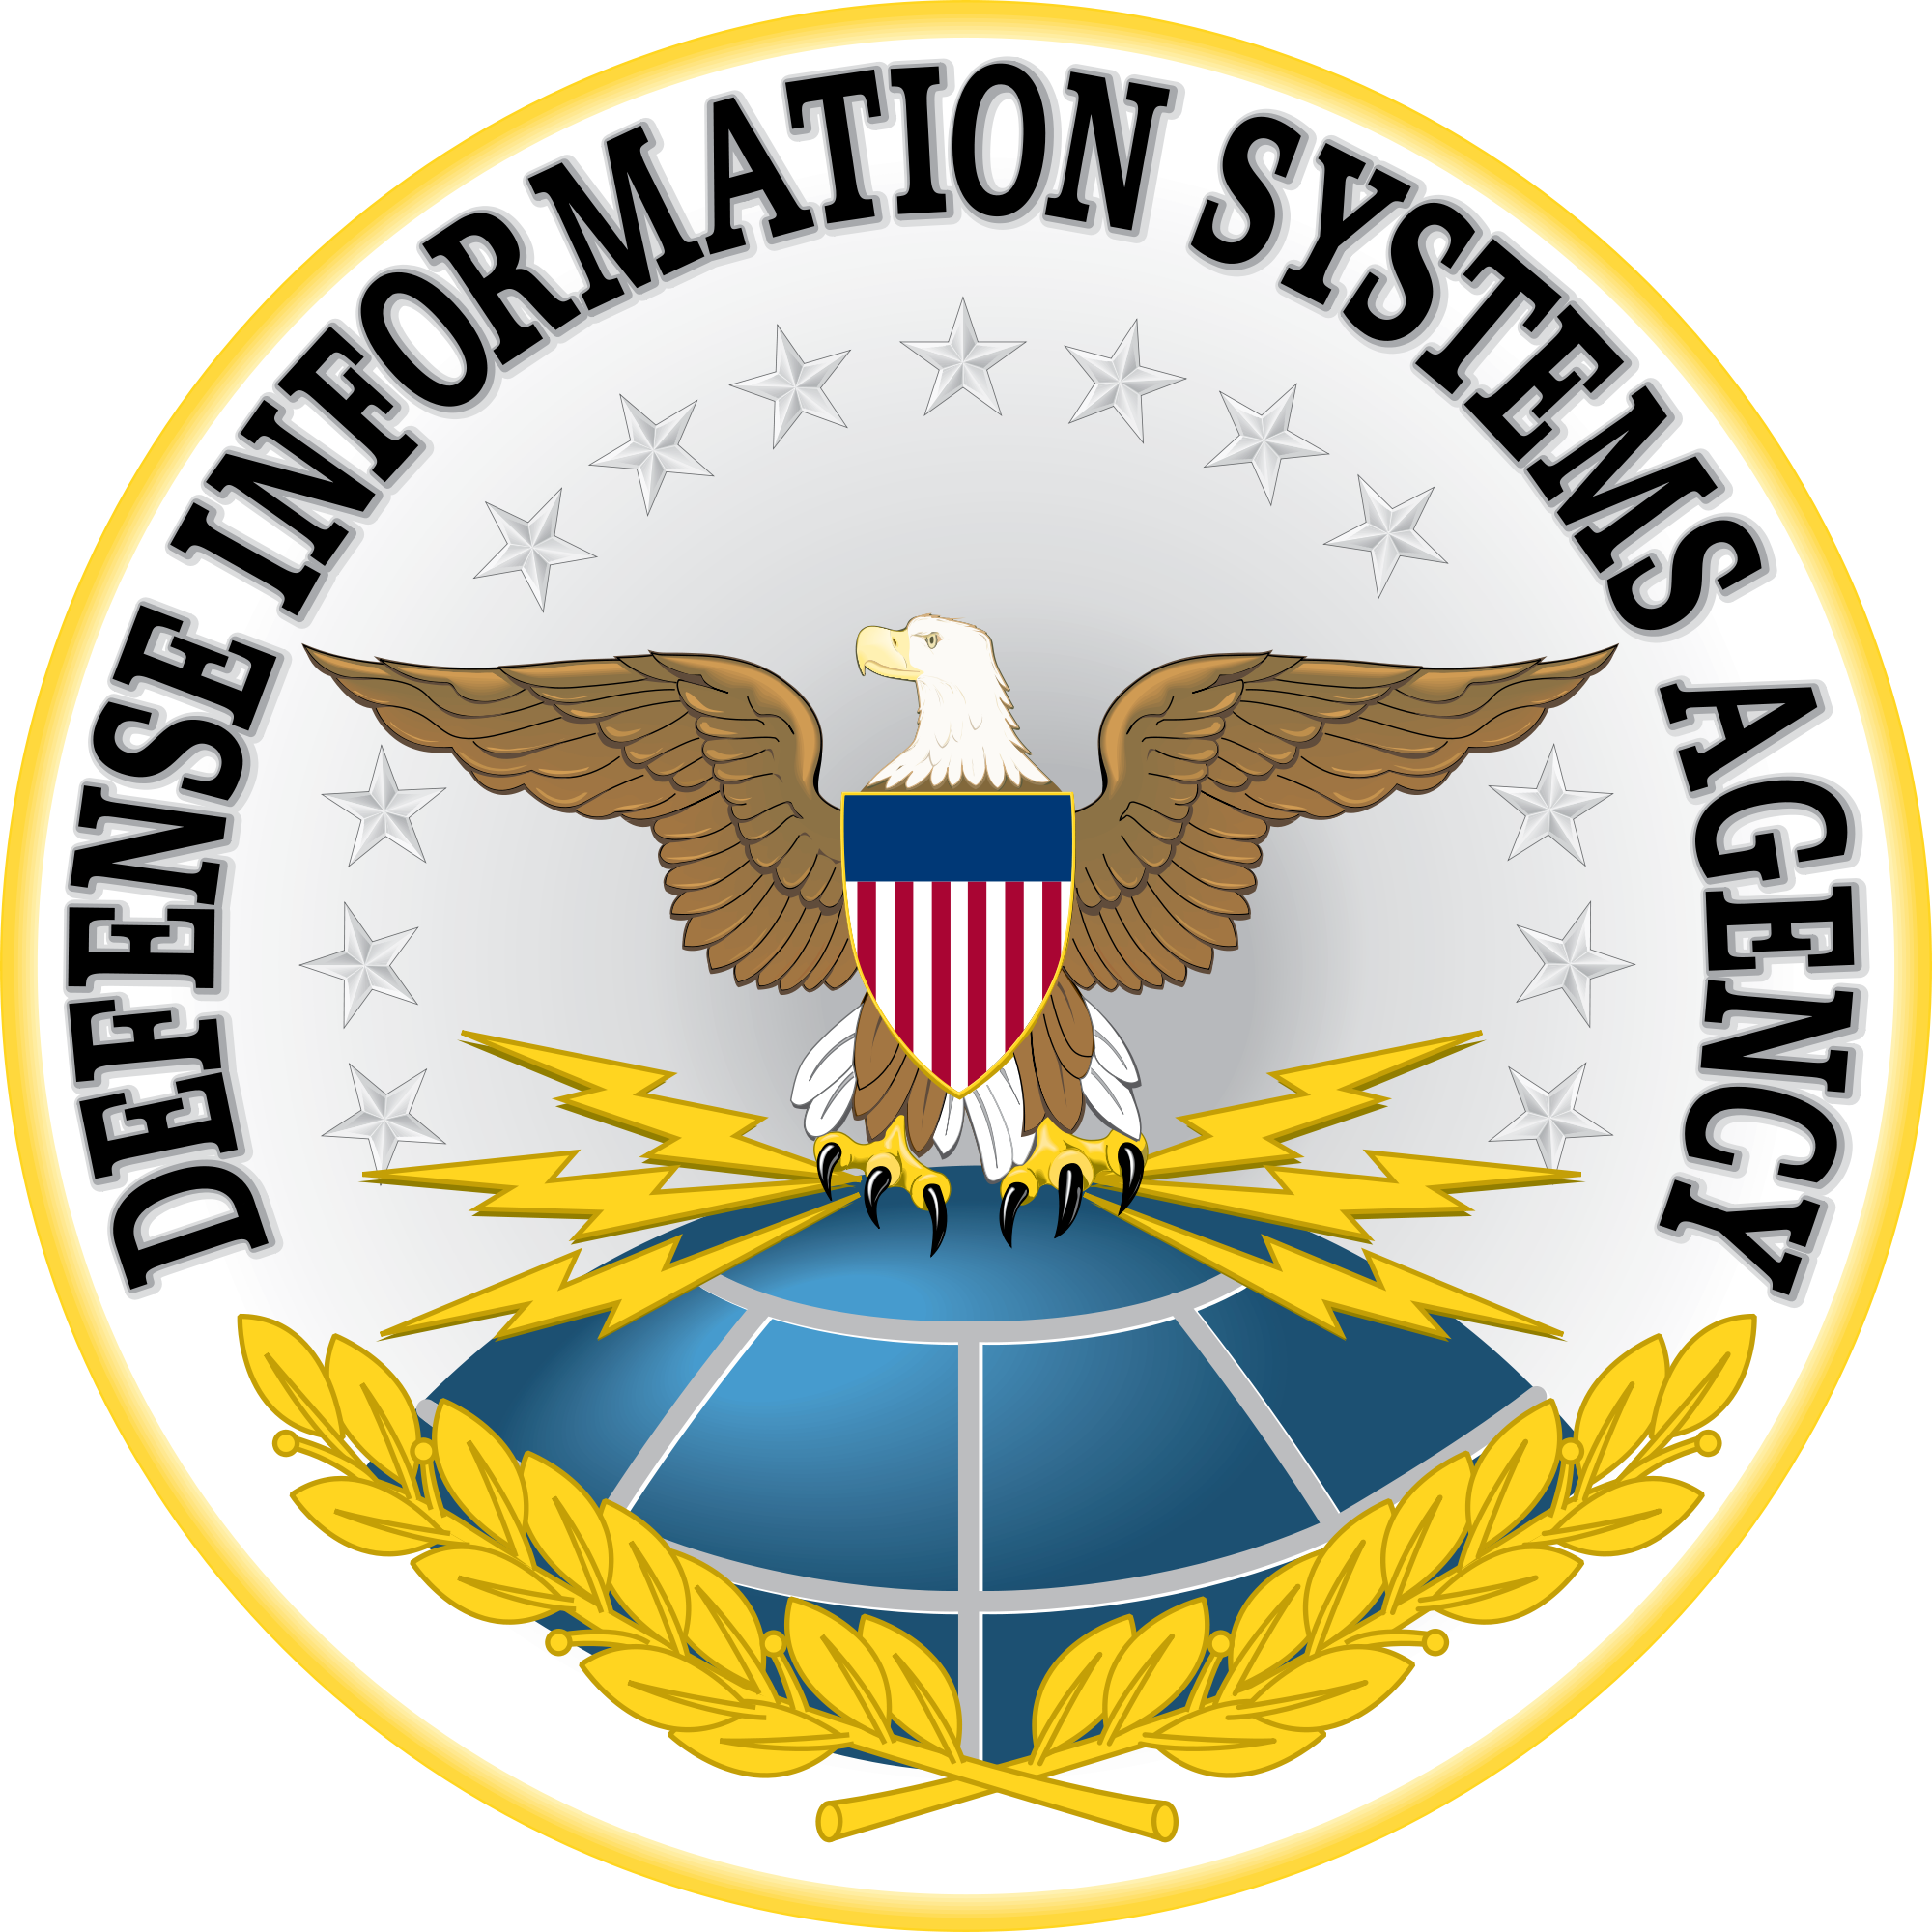 Defense Information Systems Agency (DISA)